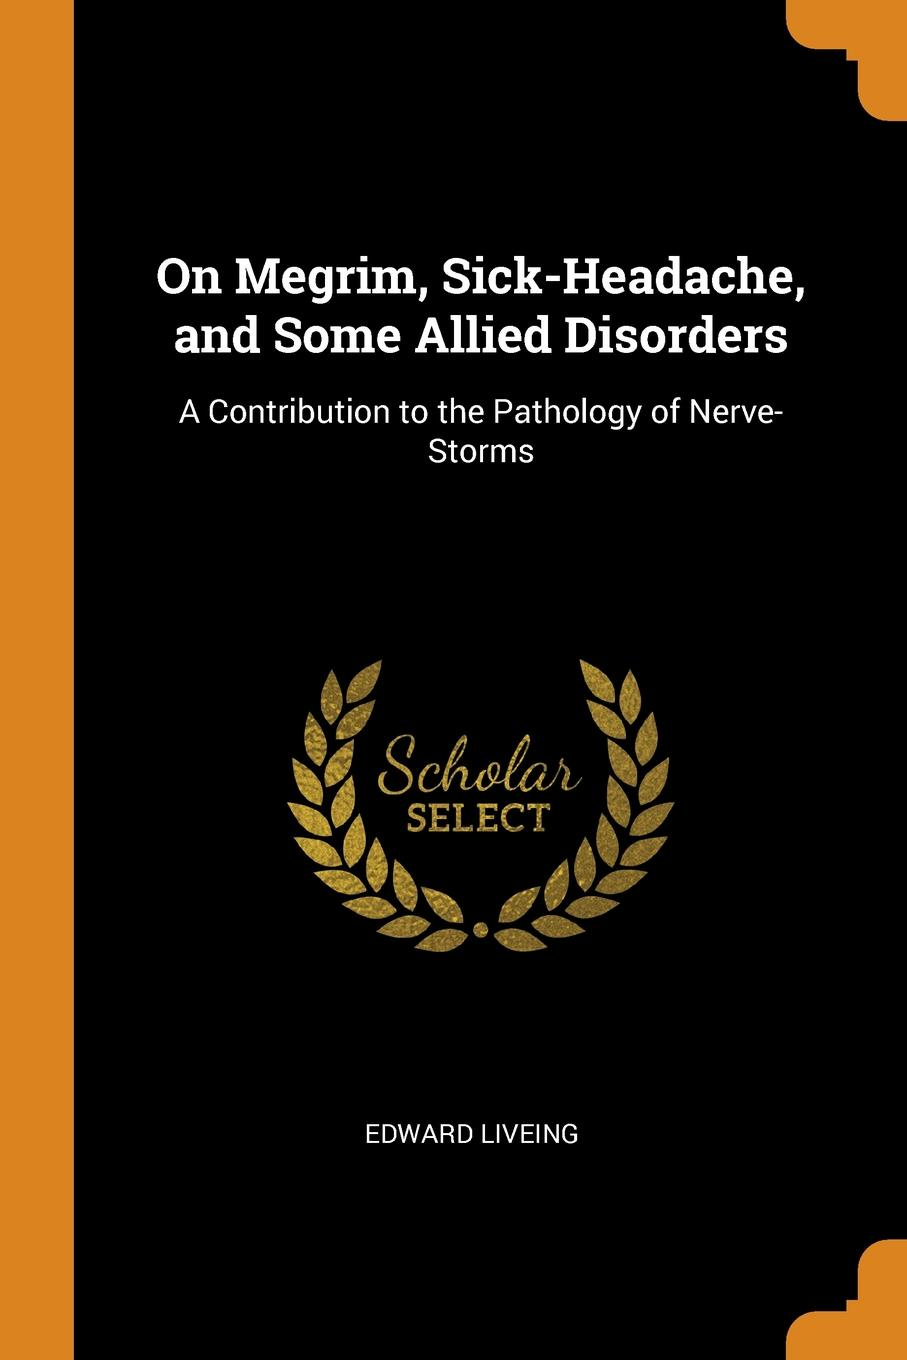 On Megrim, Sick-Headache, and Some Allied Disorders. A Contribution to the Pathology of Nerve-Storms. Edward Liveing